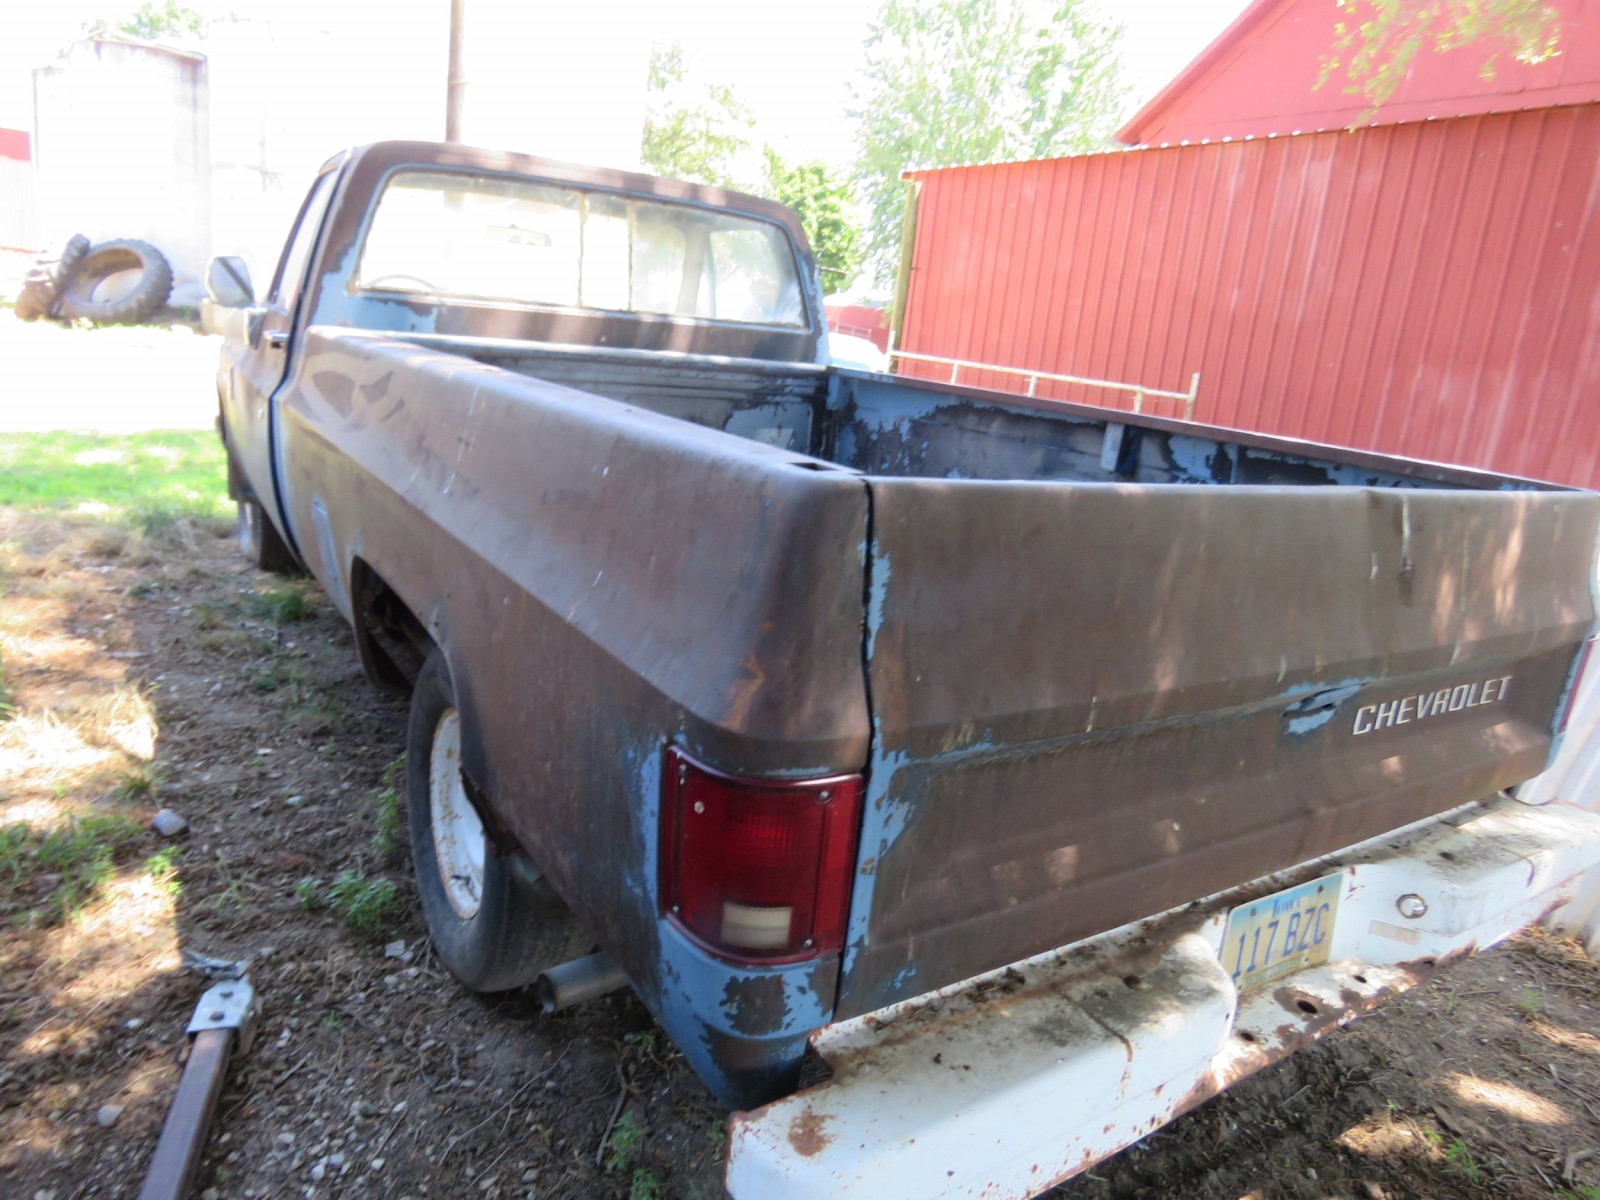 1984 Chevrolet Custom Deluxe 10 Pickup for Restore - Image 7